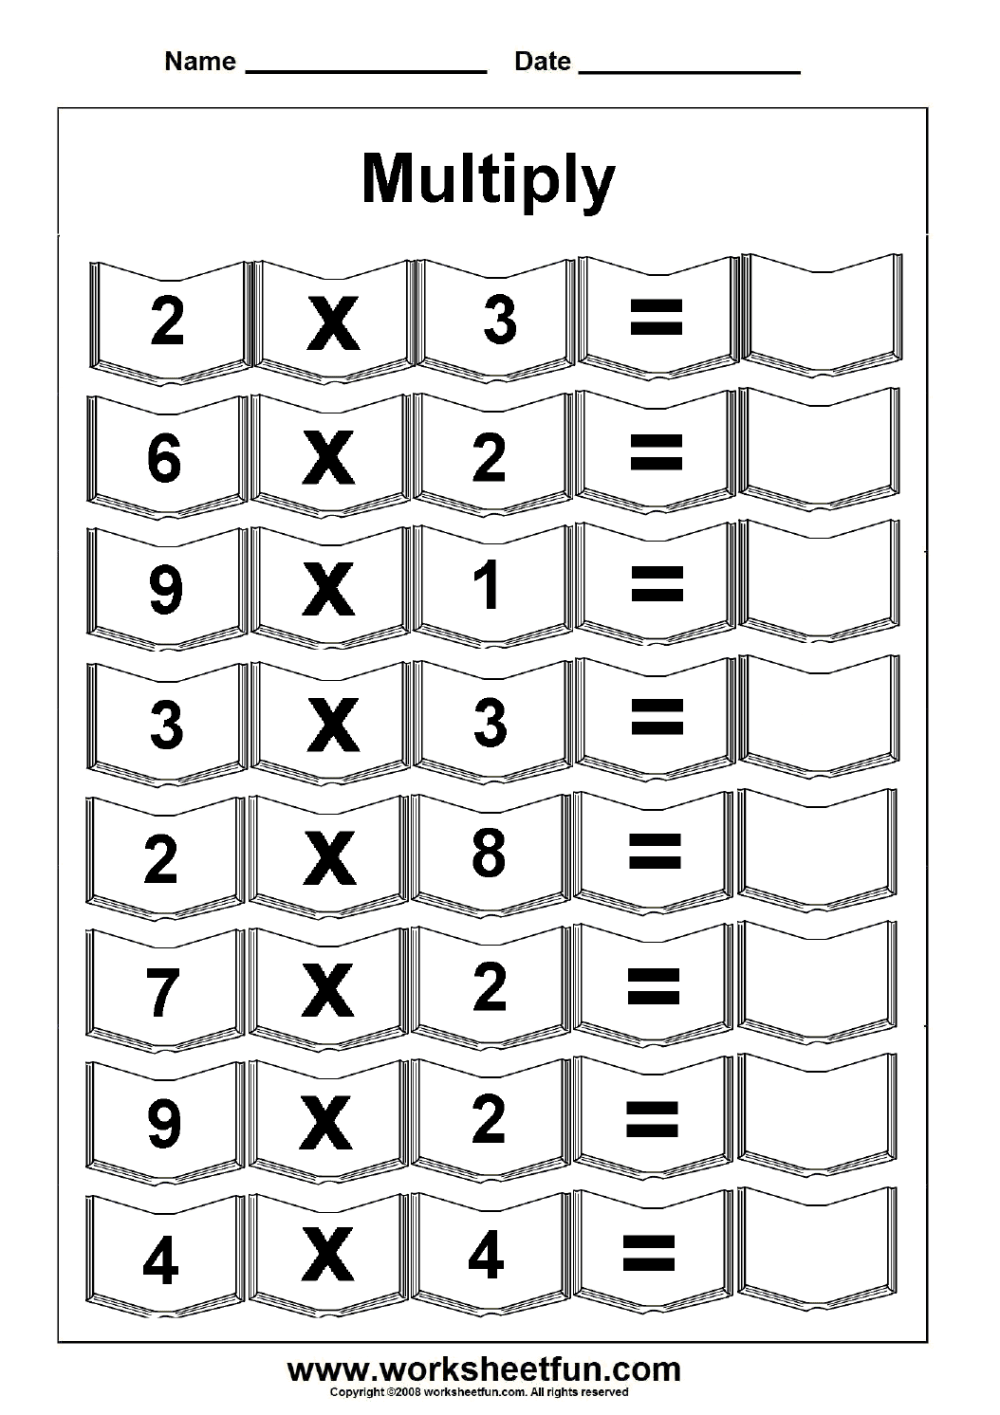 medium resolution of Multiplication – 5 Worksheets / FREE Printable Worksheets – Worksheetfun